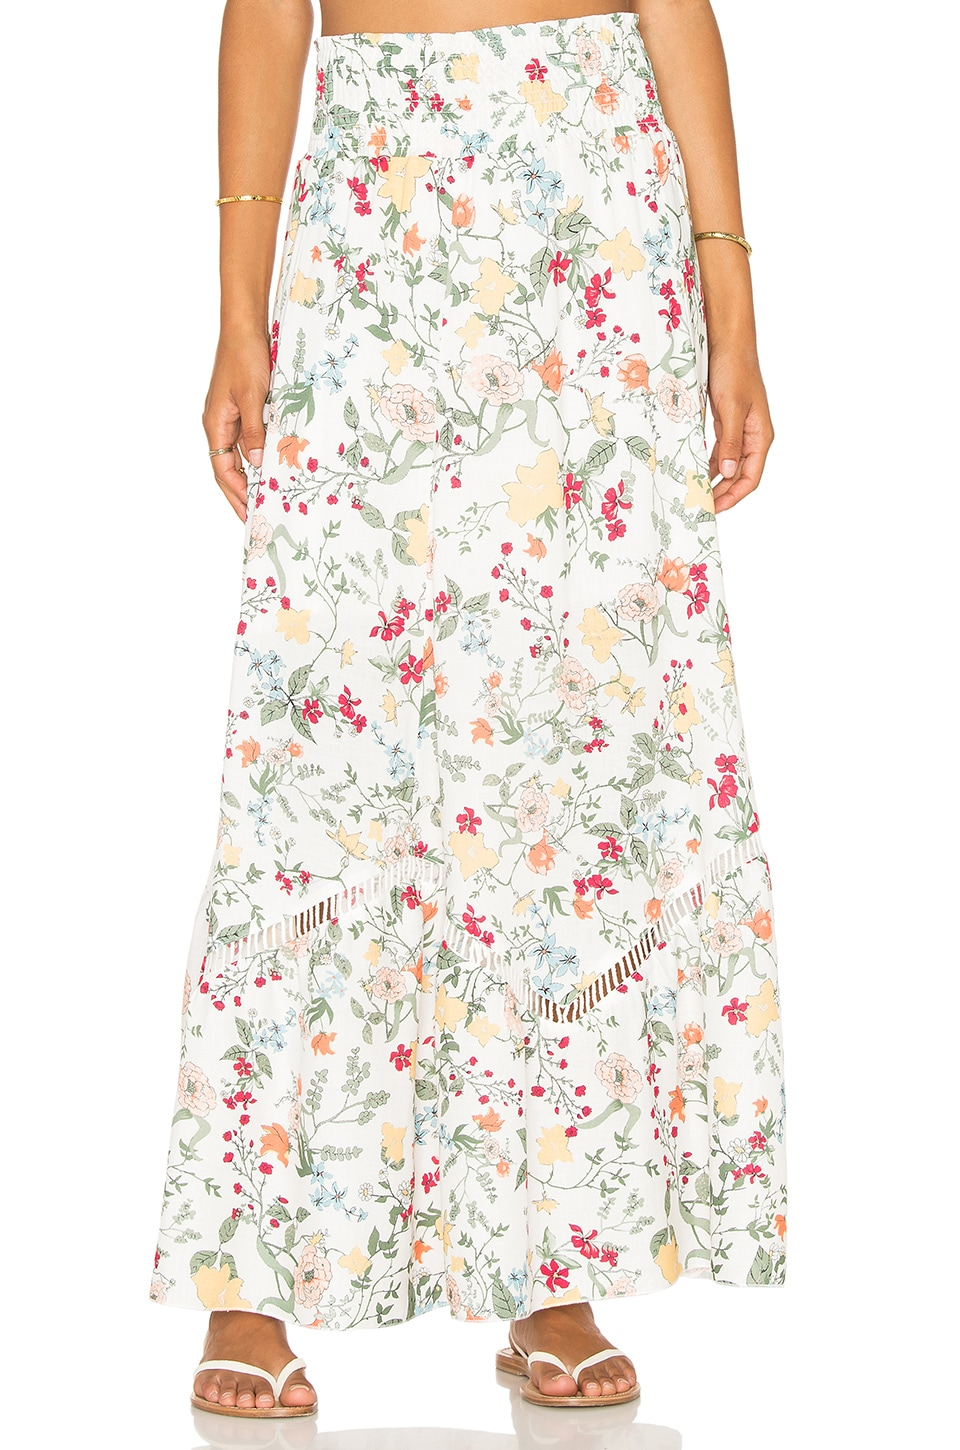 Sunny May Maxi Skirt